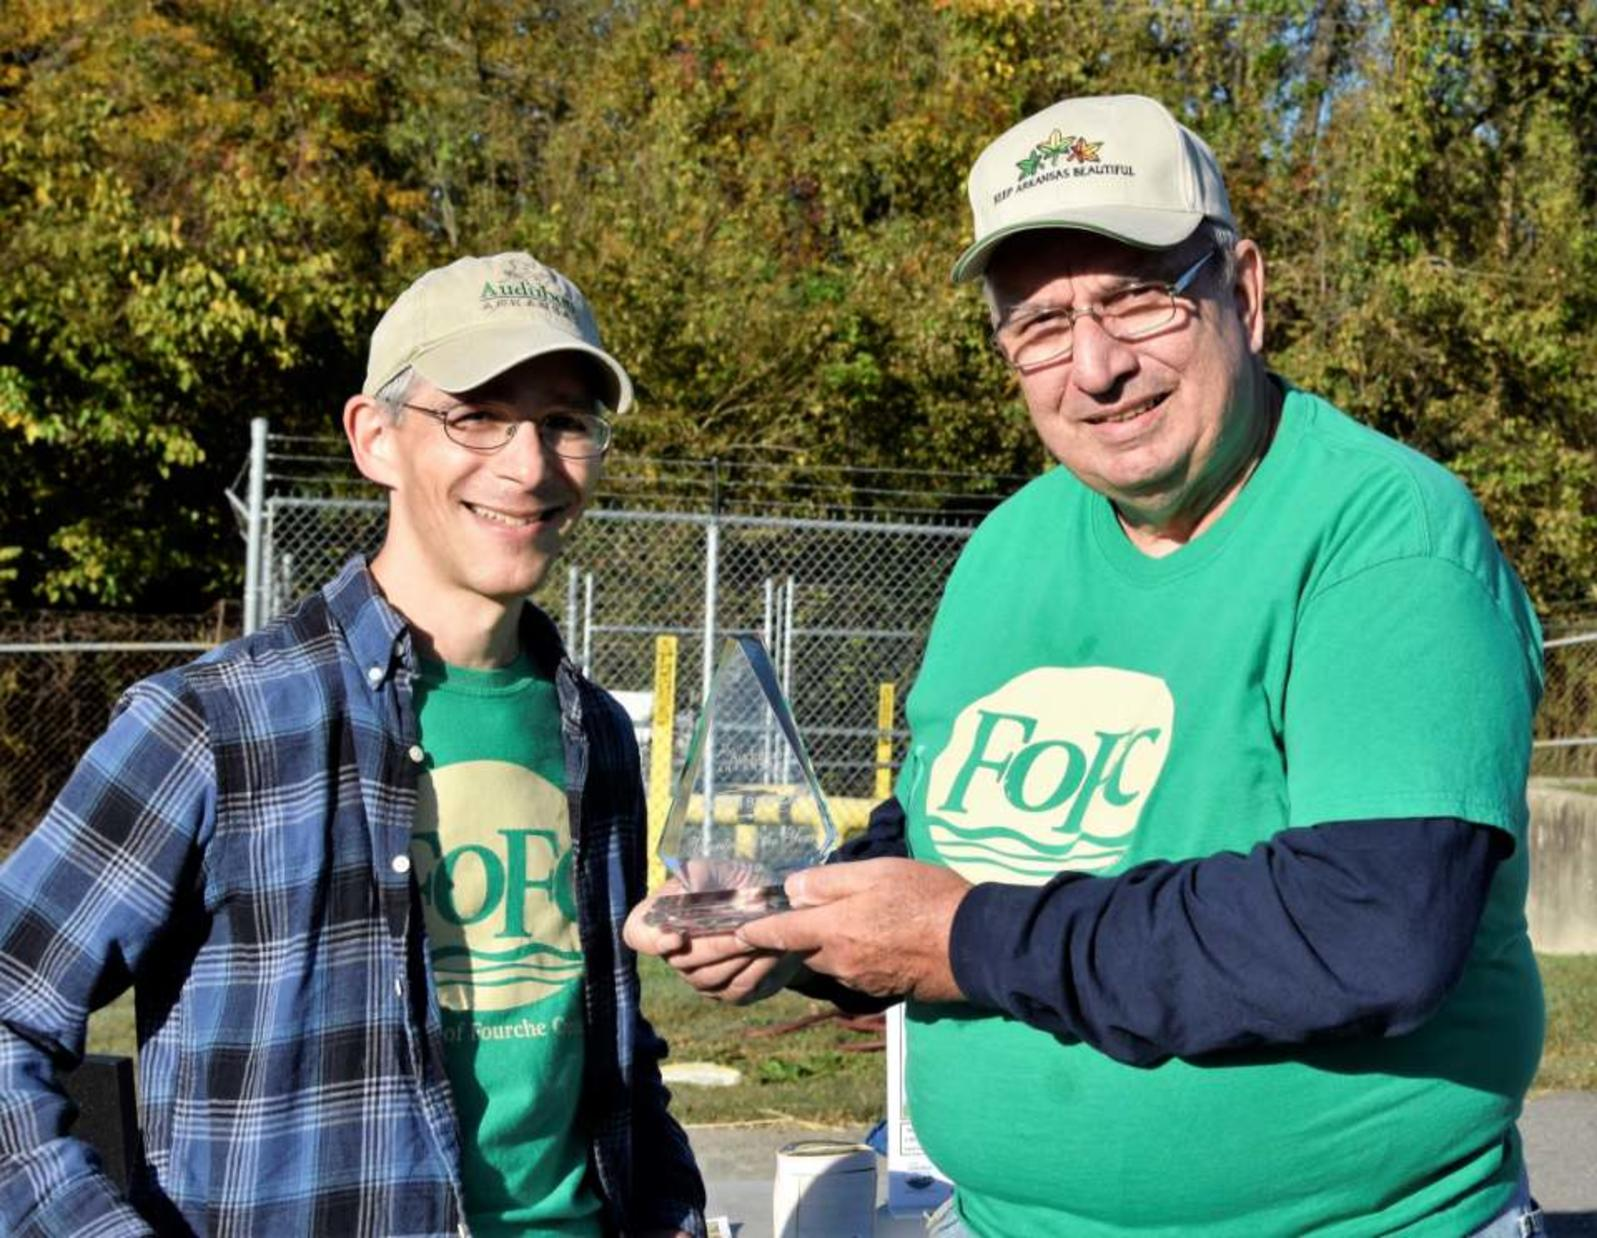 Norm Berner Volunteer of the Year Award